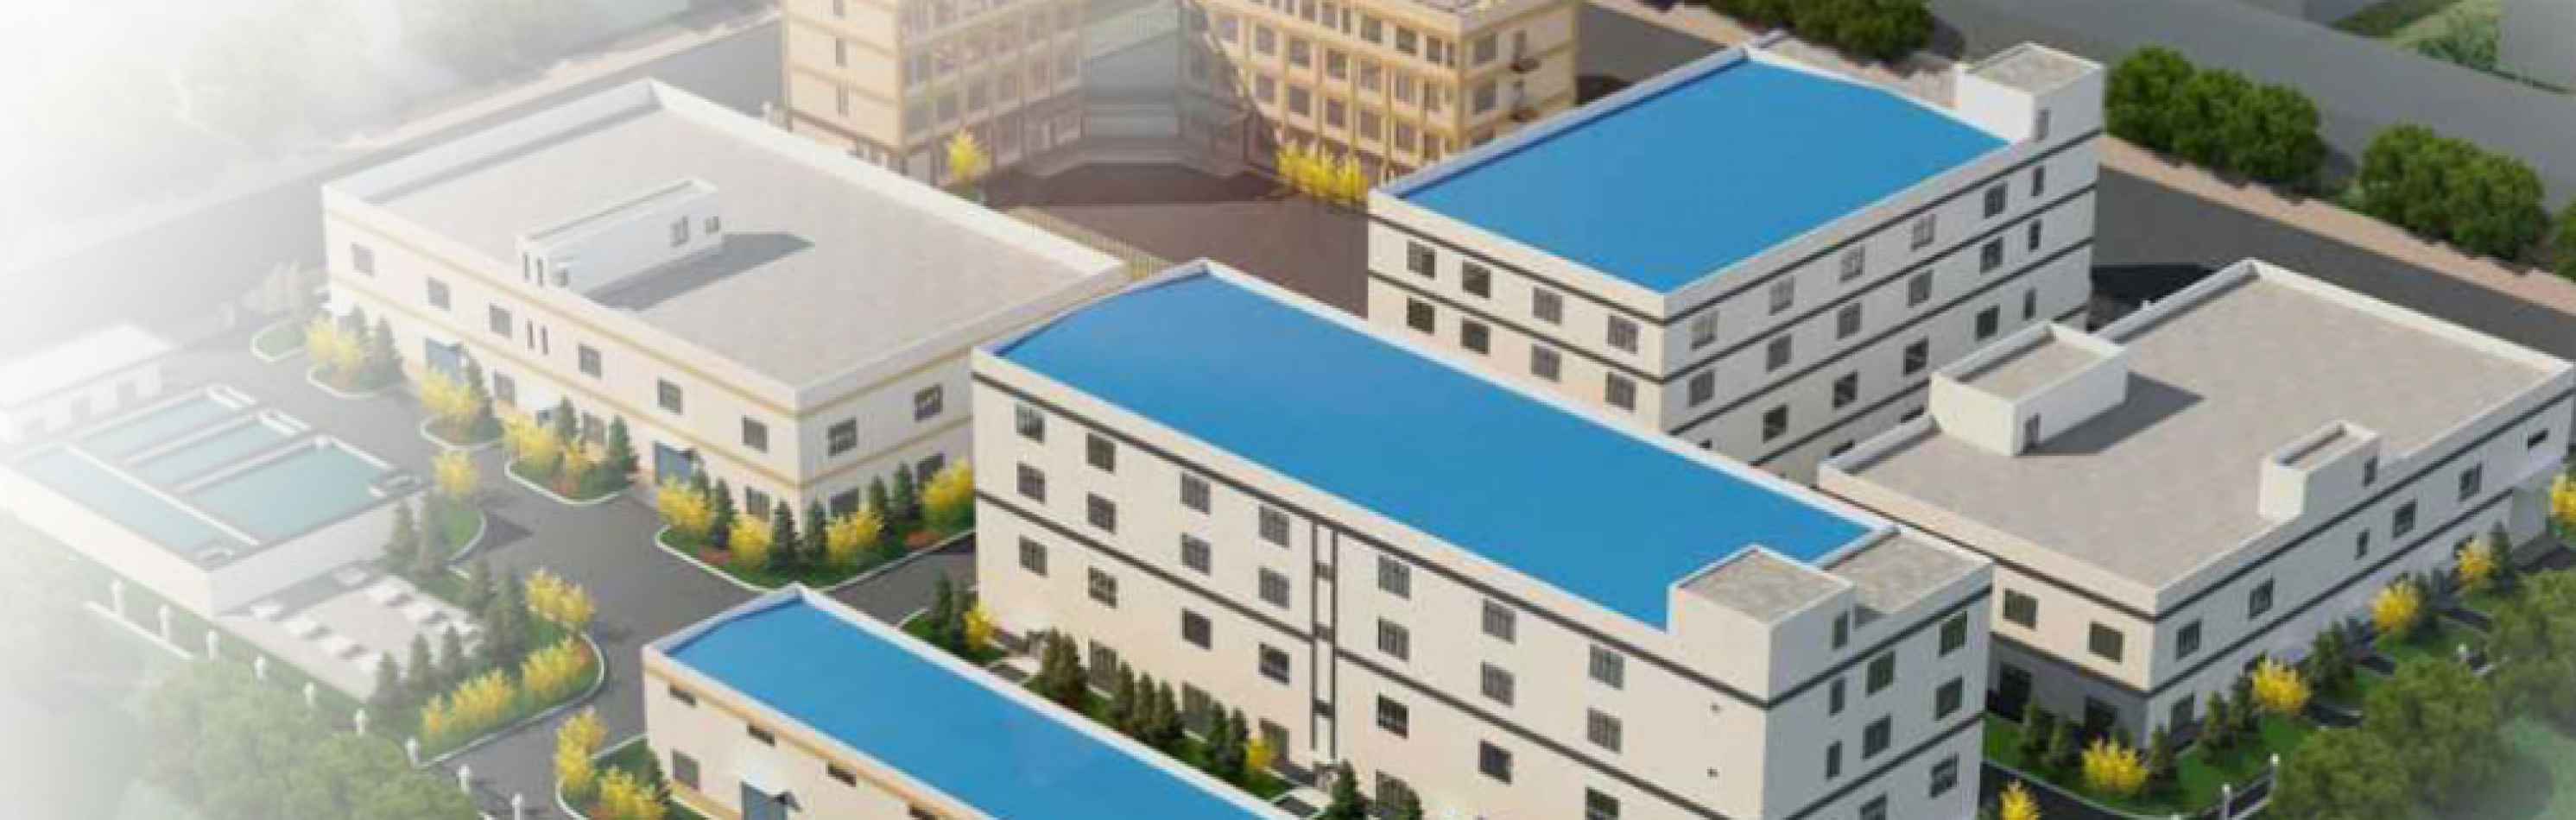 Honghao Chemical Co., Ltd.